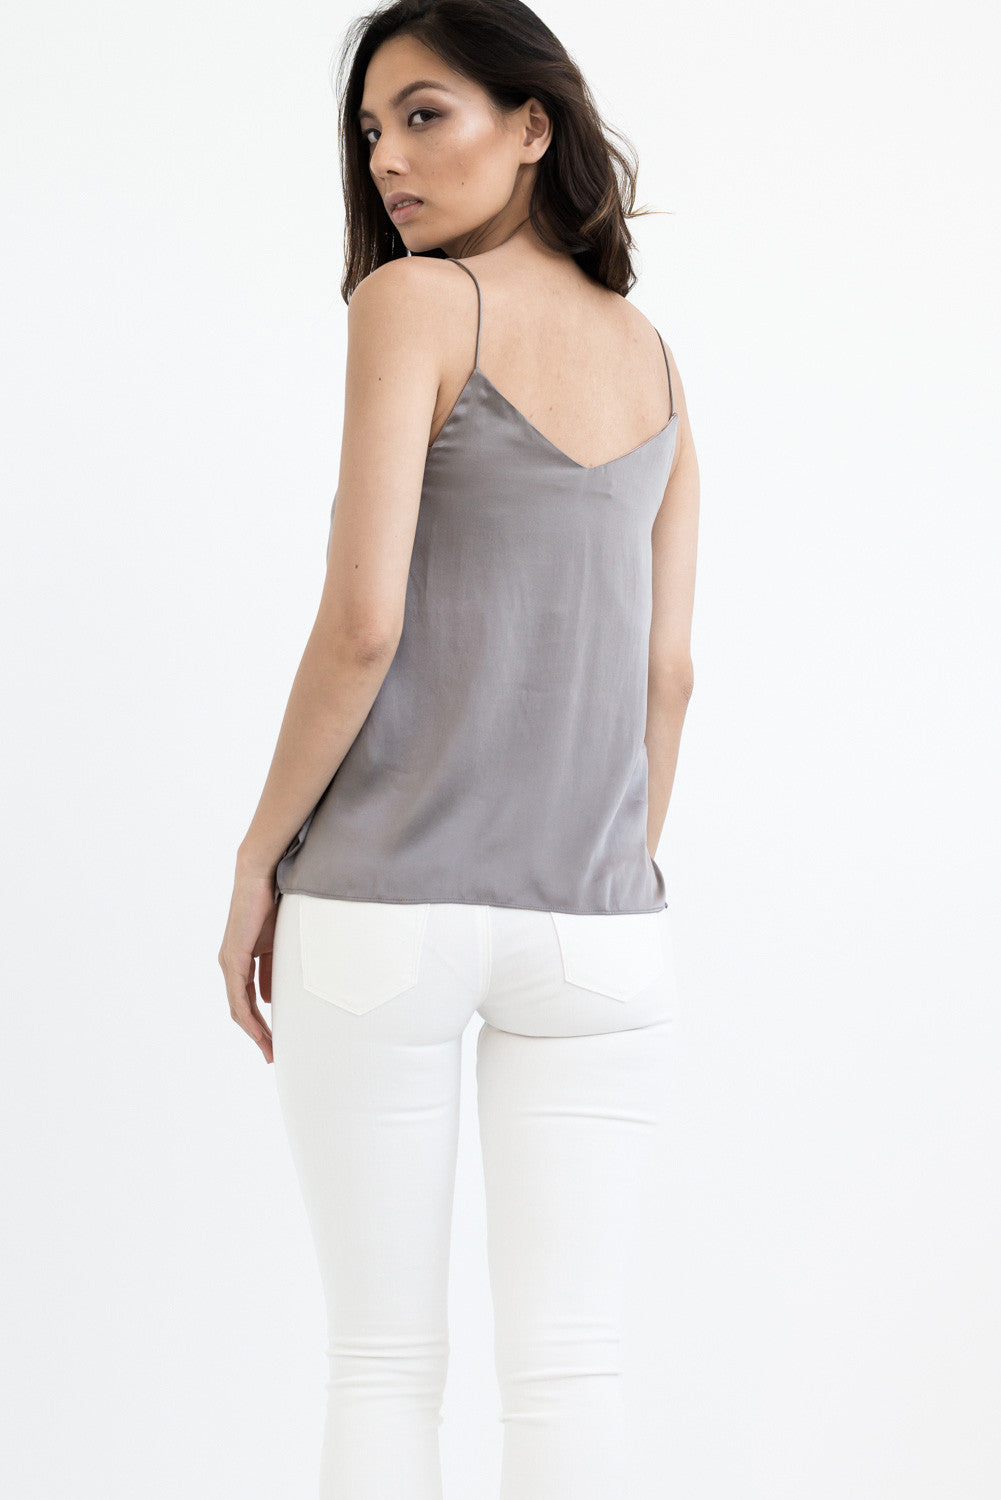 THE SLIP ON CAMISOLE - SILVER GREY FOX